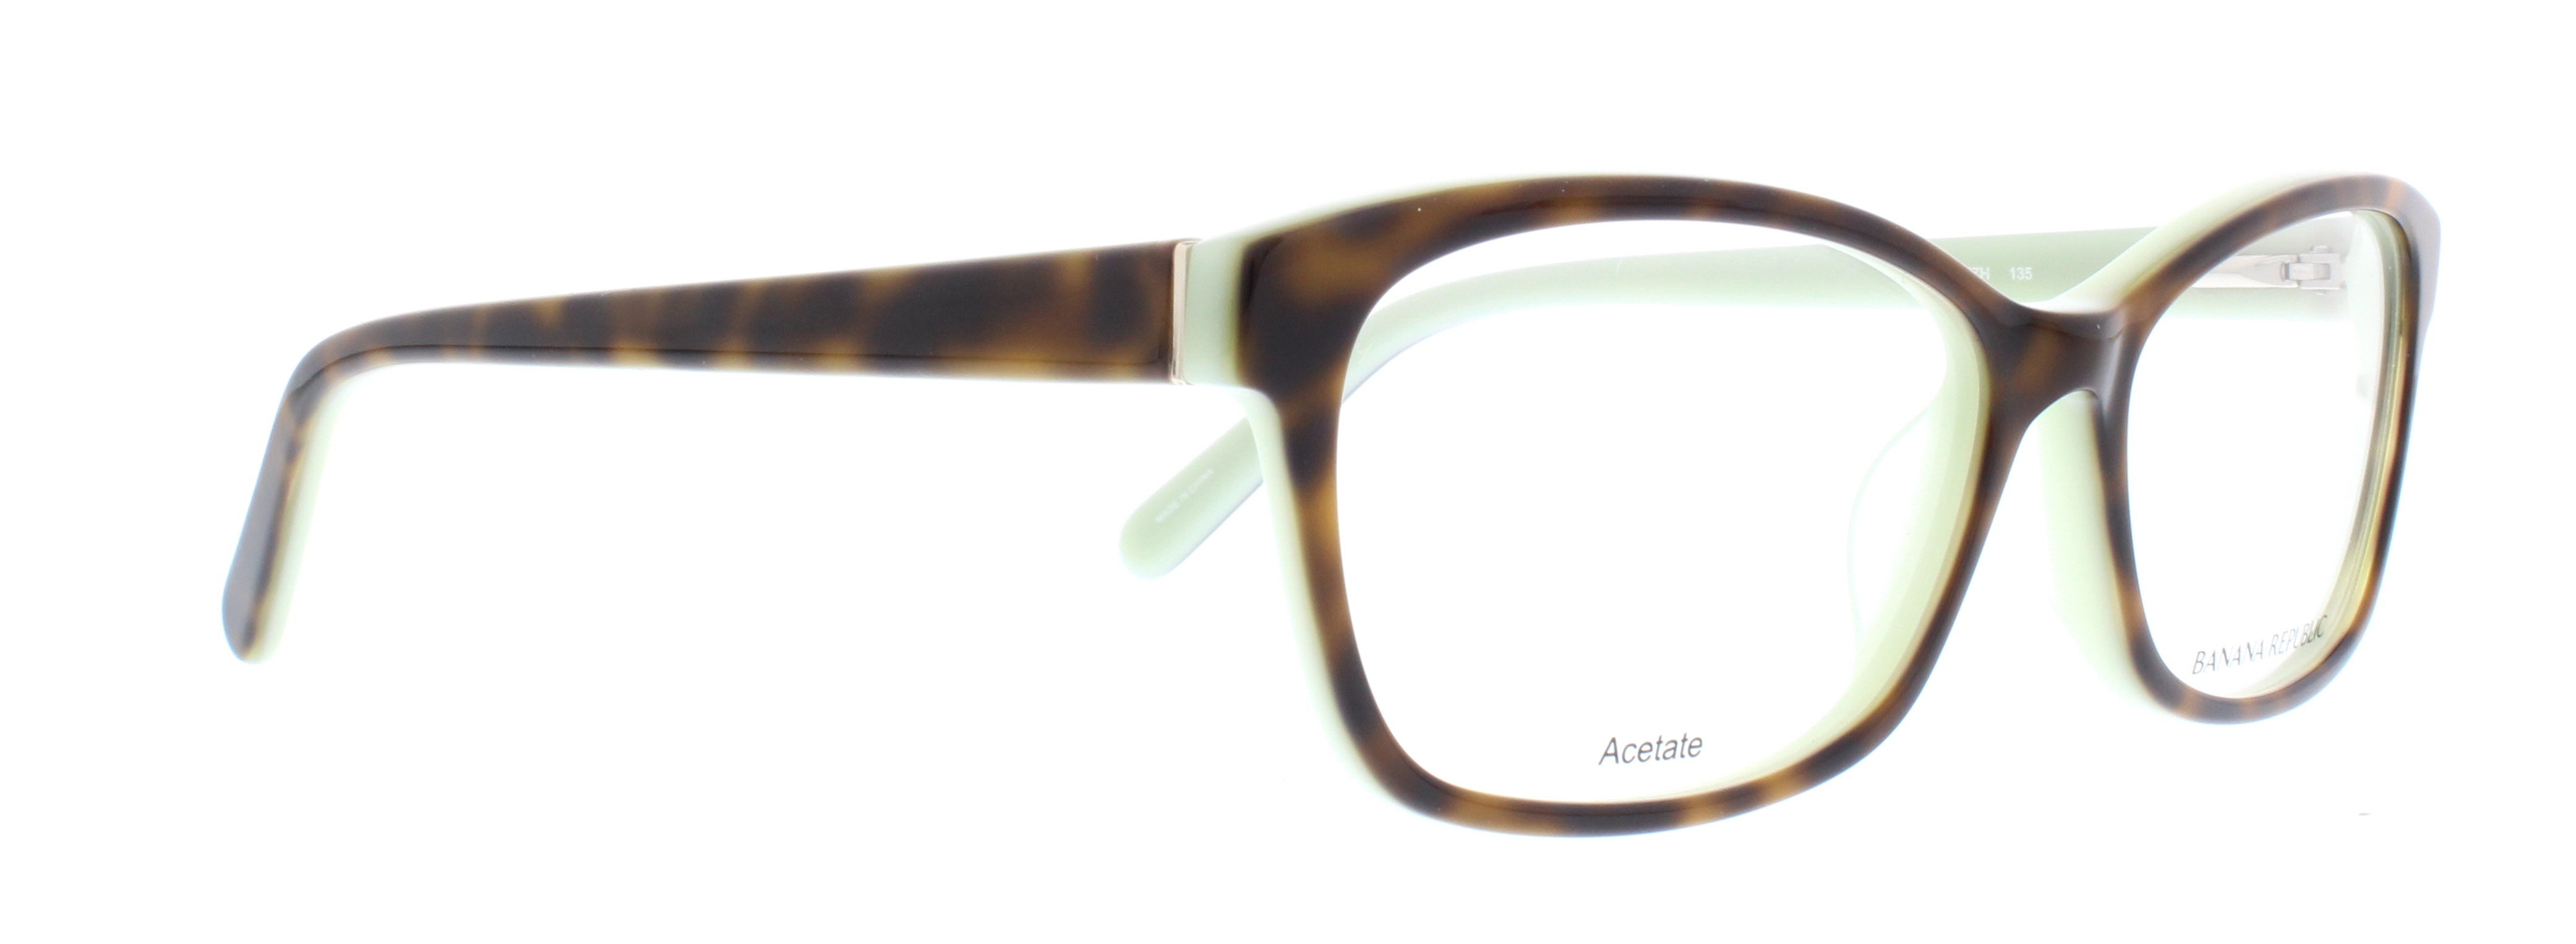 BANANA REPUBLIC Eyeglasses KHOLE 0JZH Tortoise Mint 53MM ...